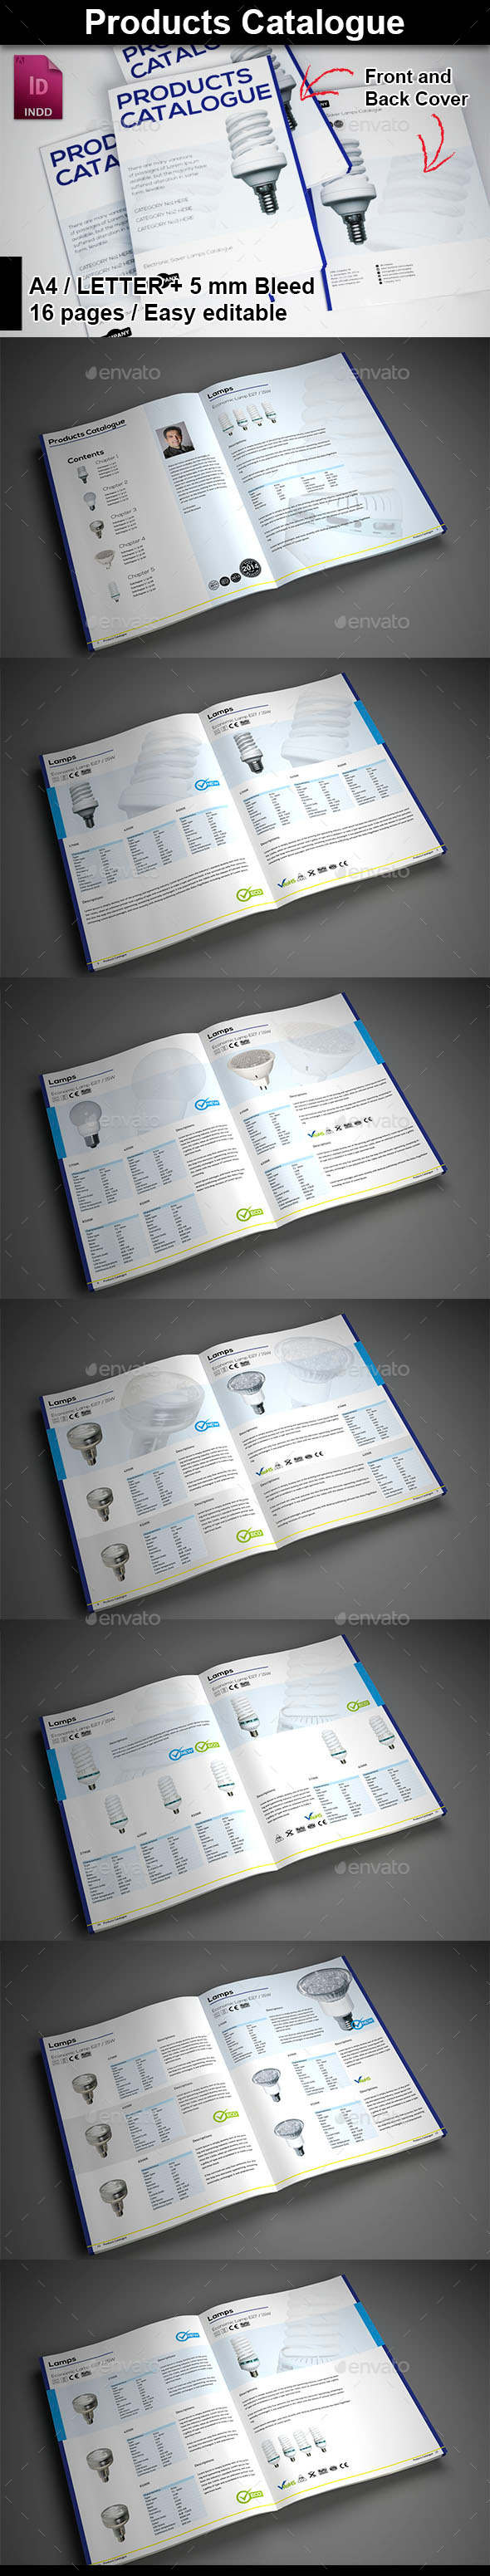 GraphicRiver Products Catalogue 9642383